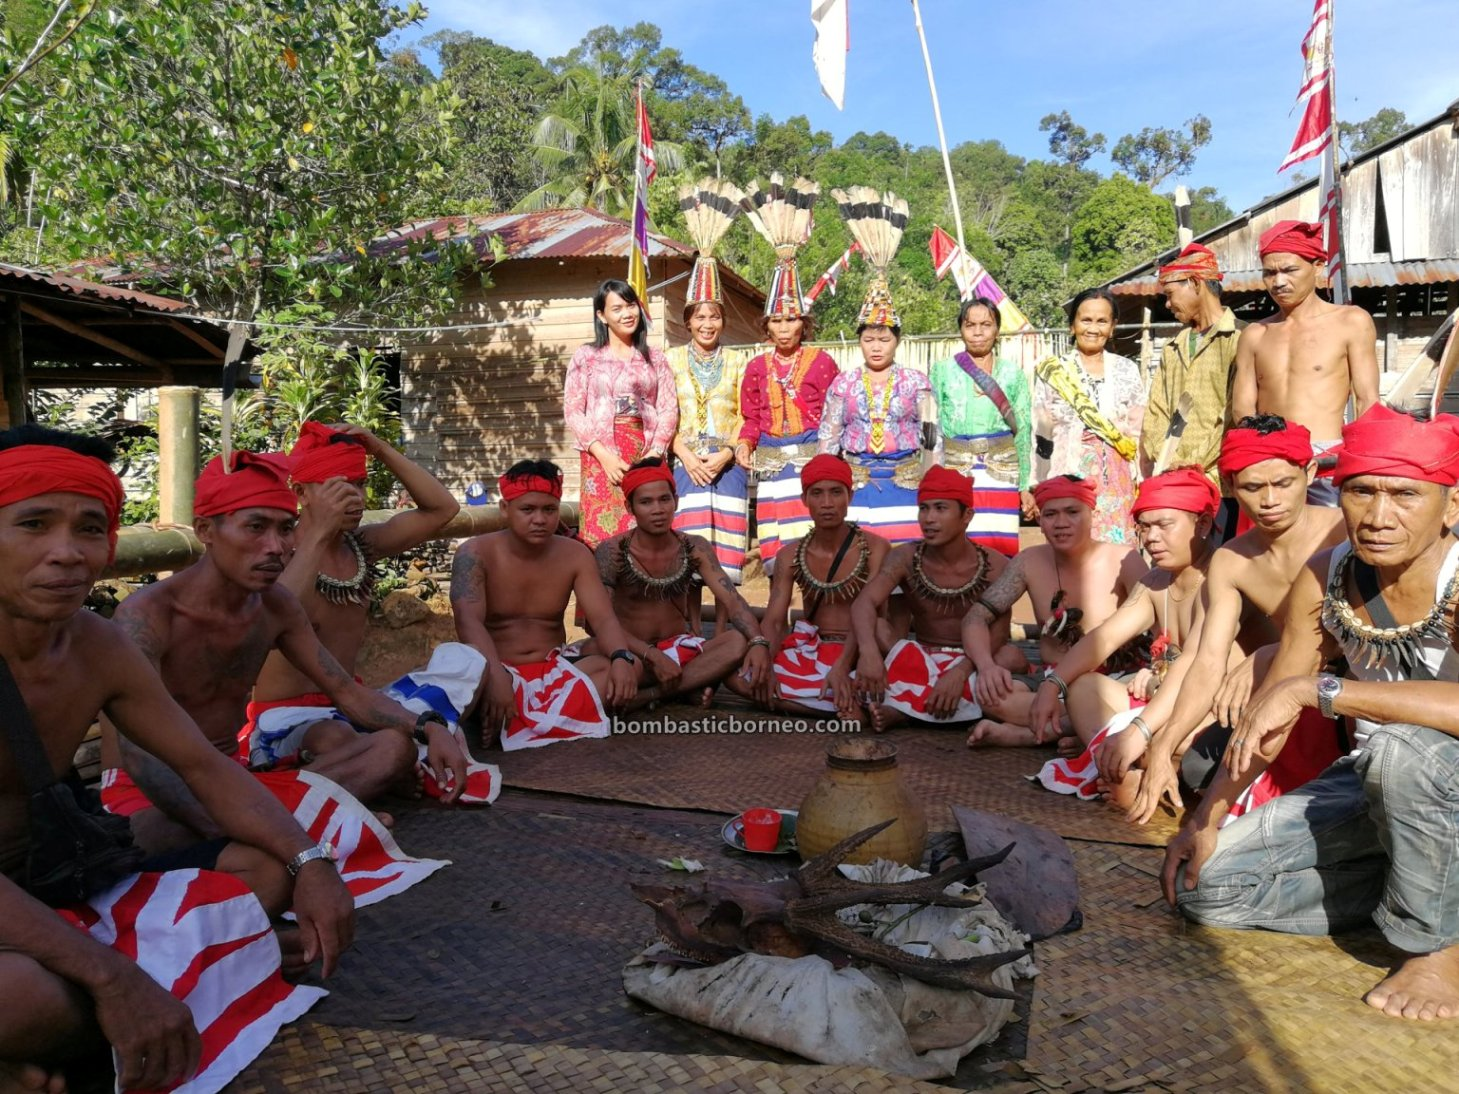 Nyobeng Kambih, Harvest Festival, traditional, backpackers, Indonesia, West Kalimantan, Desa Bengkawan, ethnic, Indigenous, tribal, obyek wisata, Travel guide, Trans Borneo, 婆羅洲土著部落, 西加里曼丹比达友, 孟加映原住民丰收节,